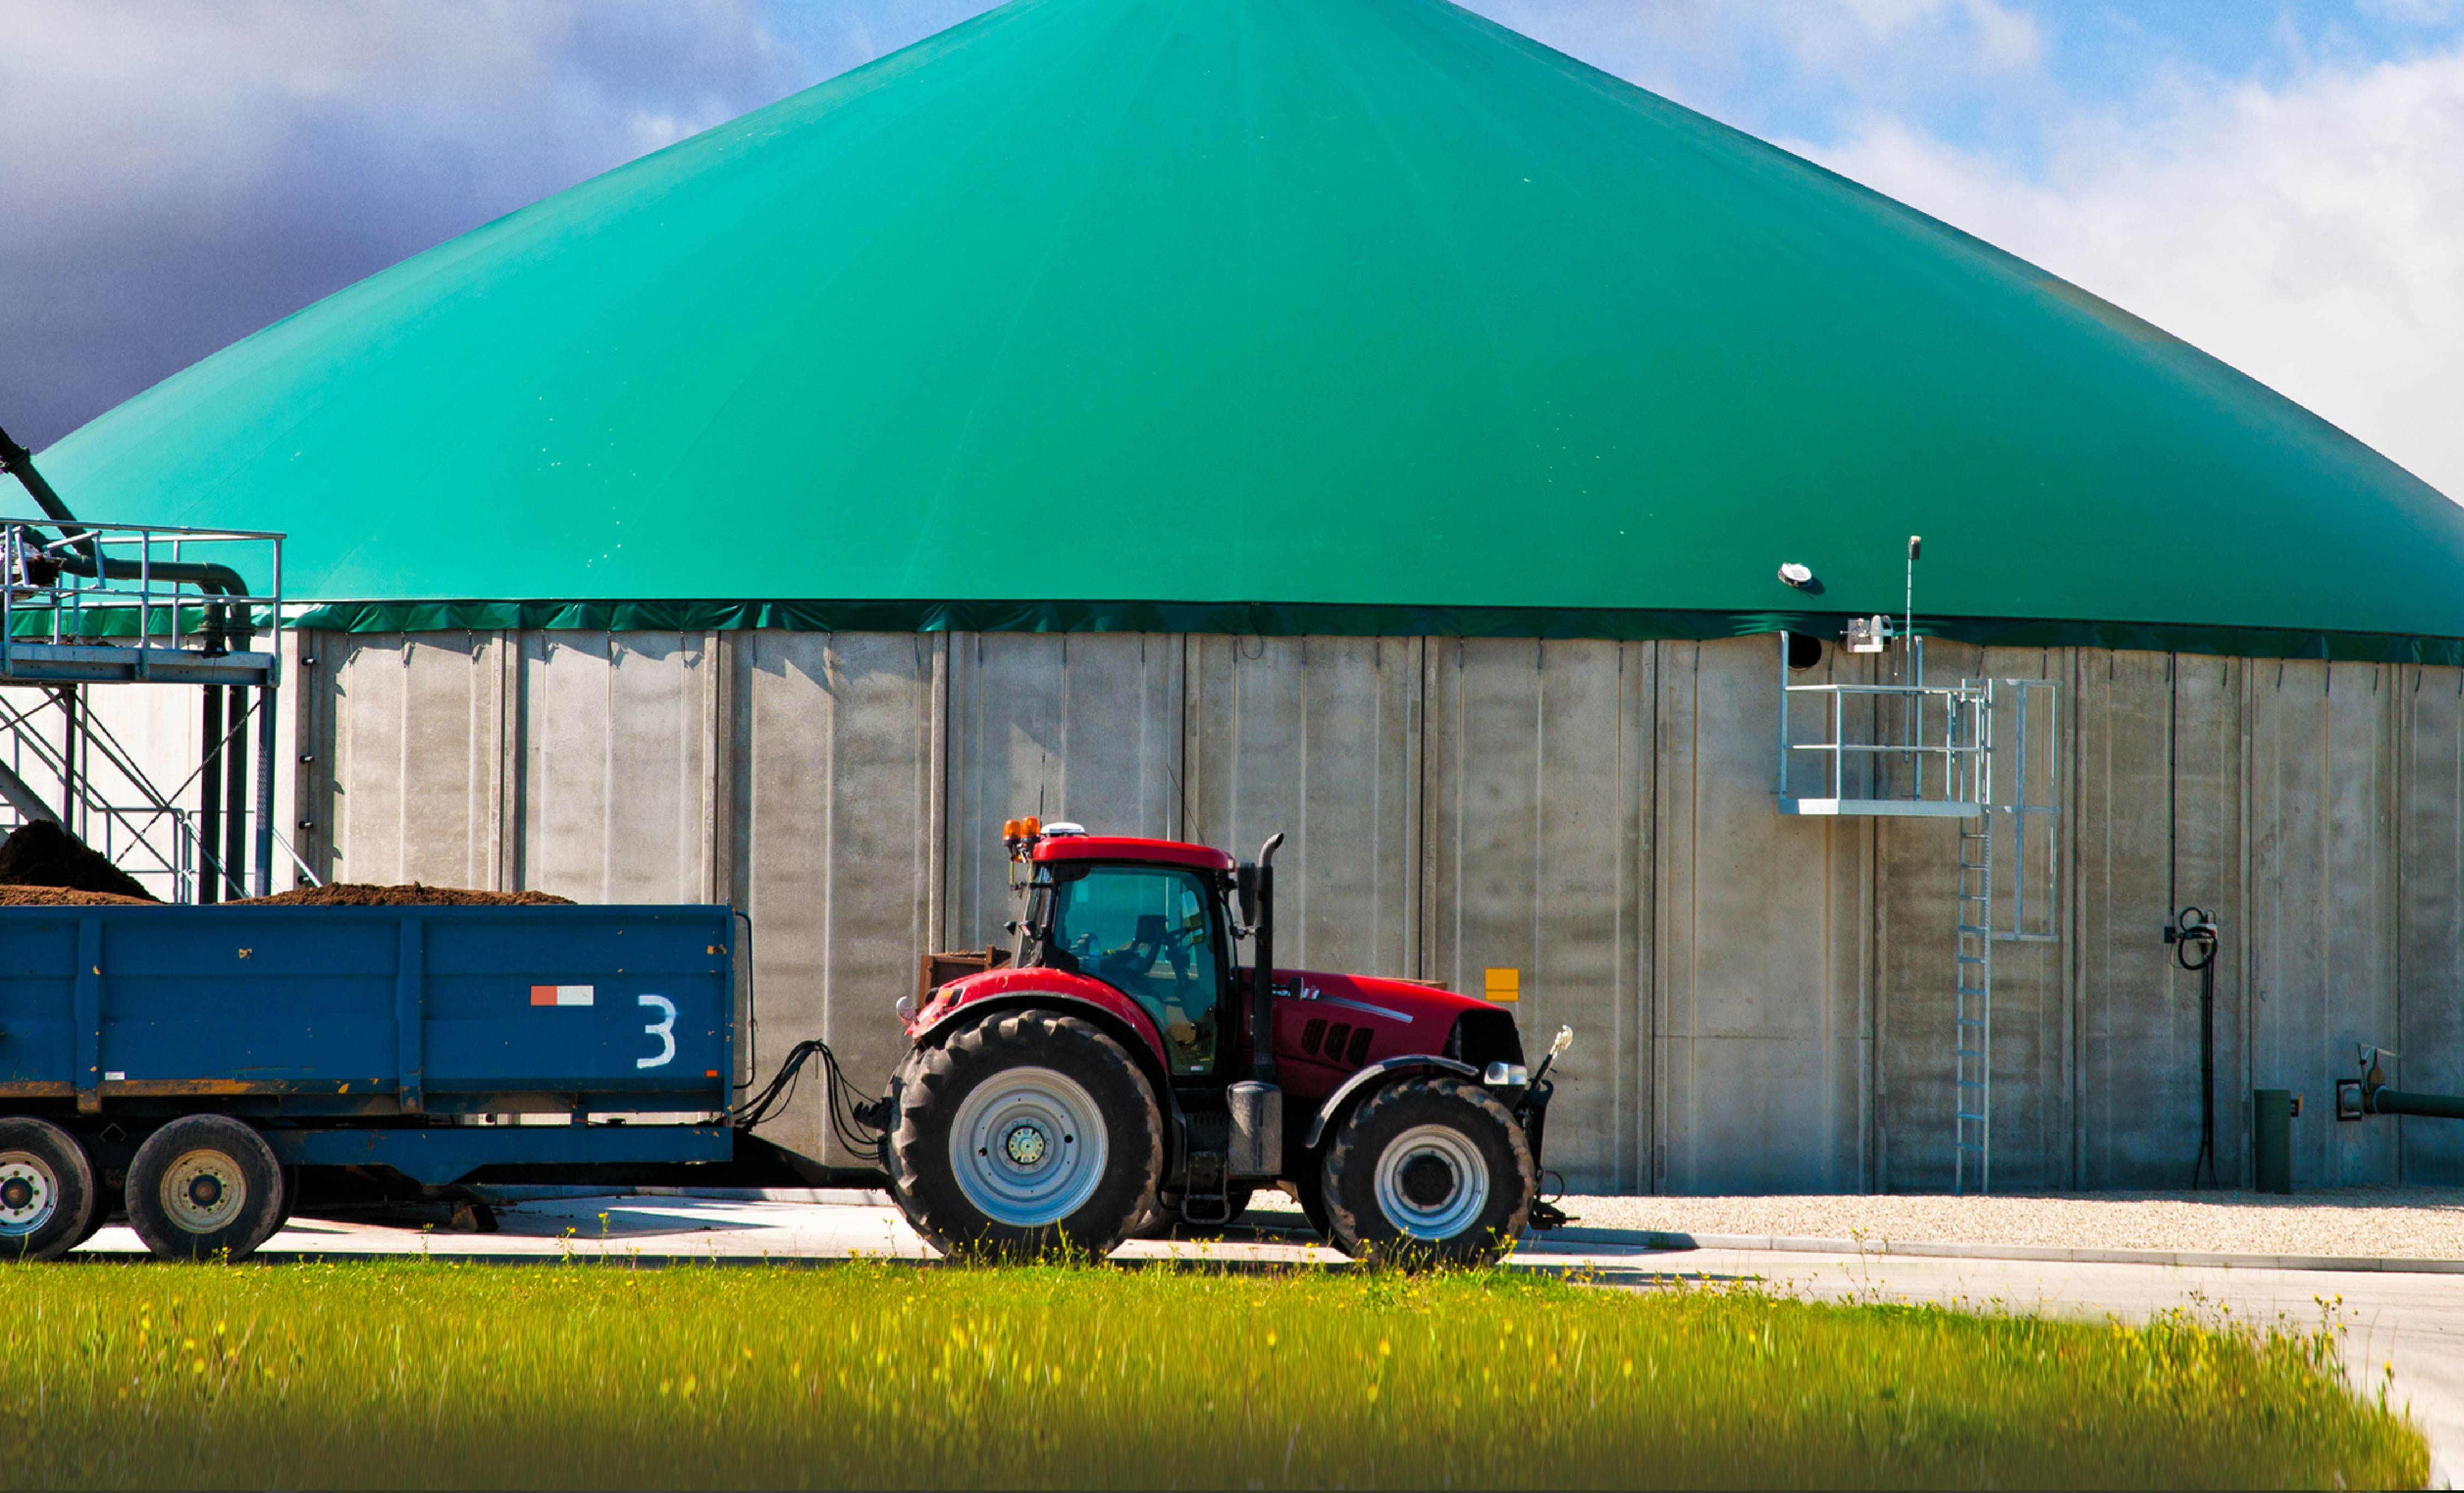 Tractor and Shed